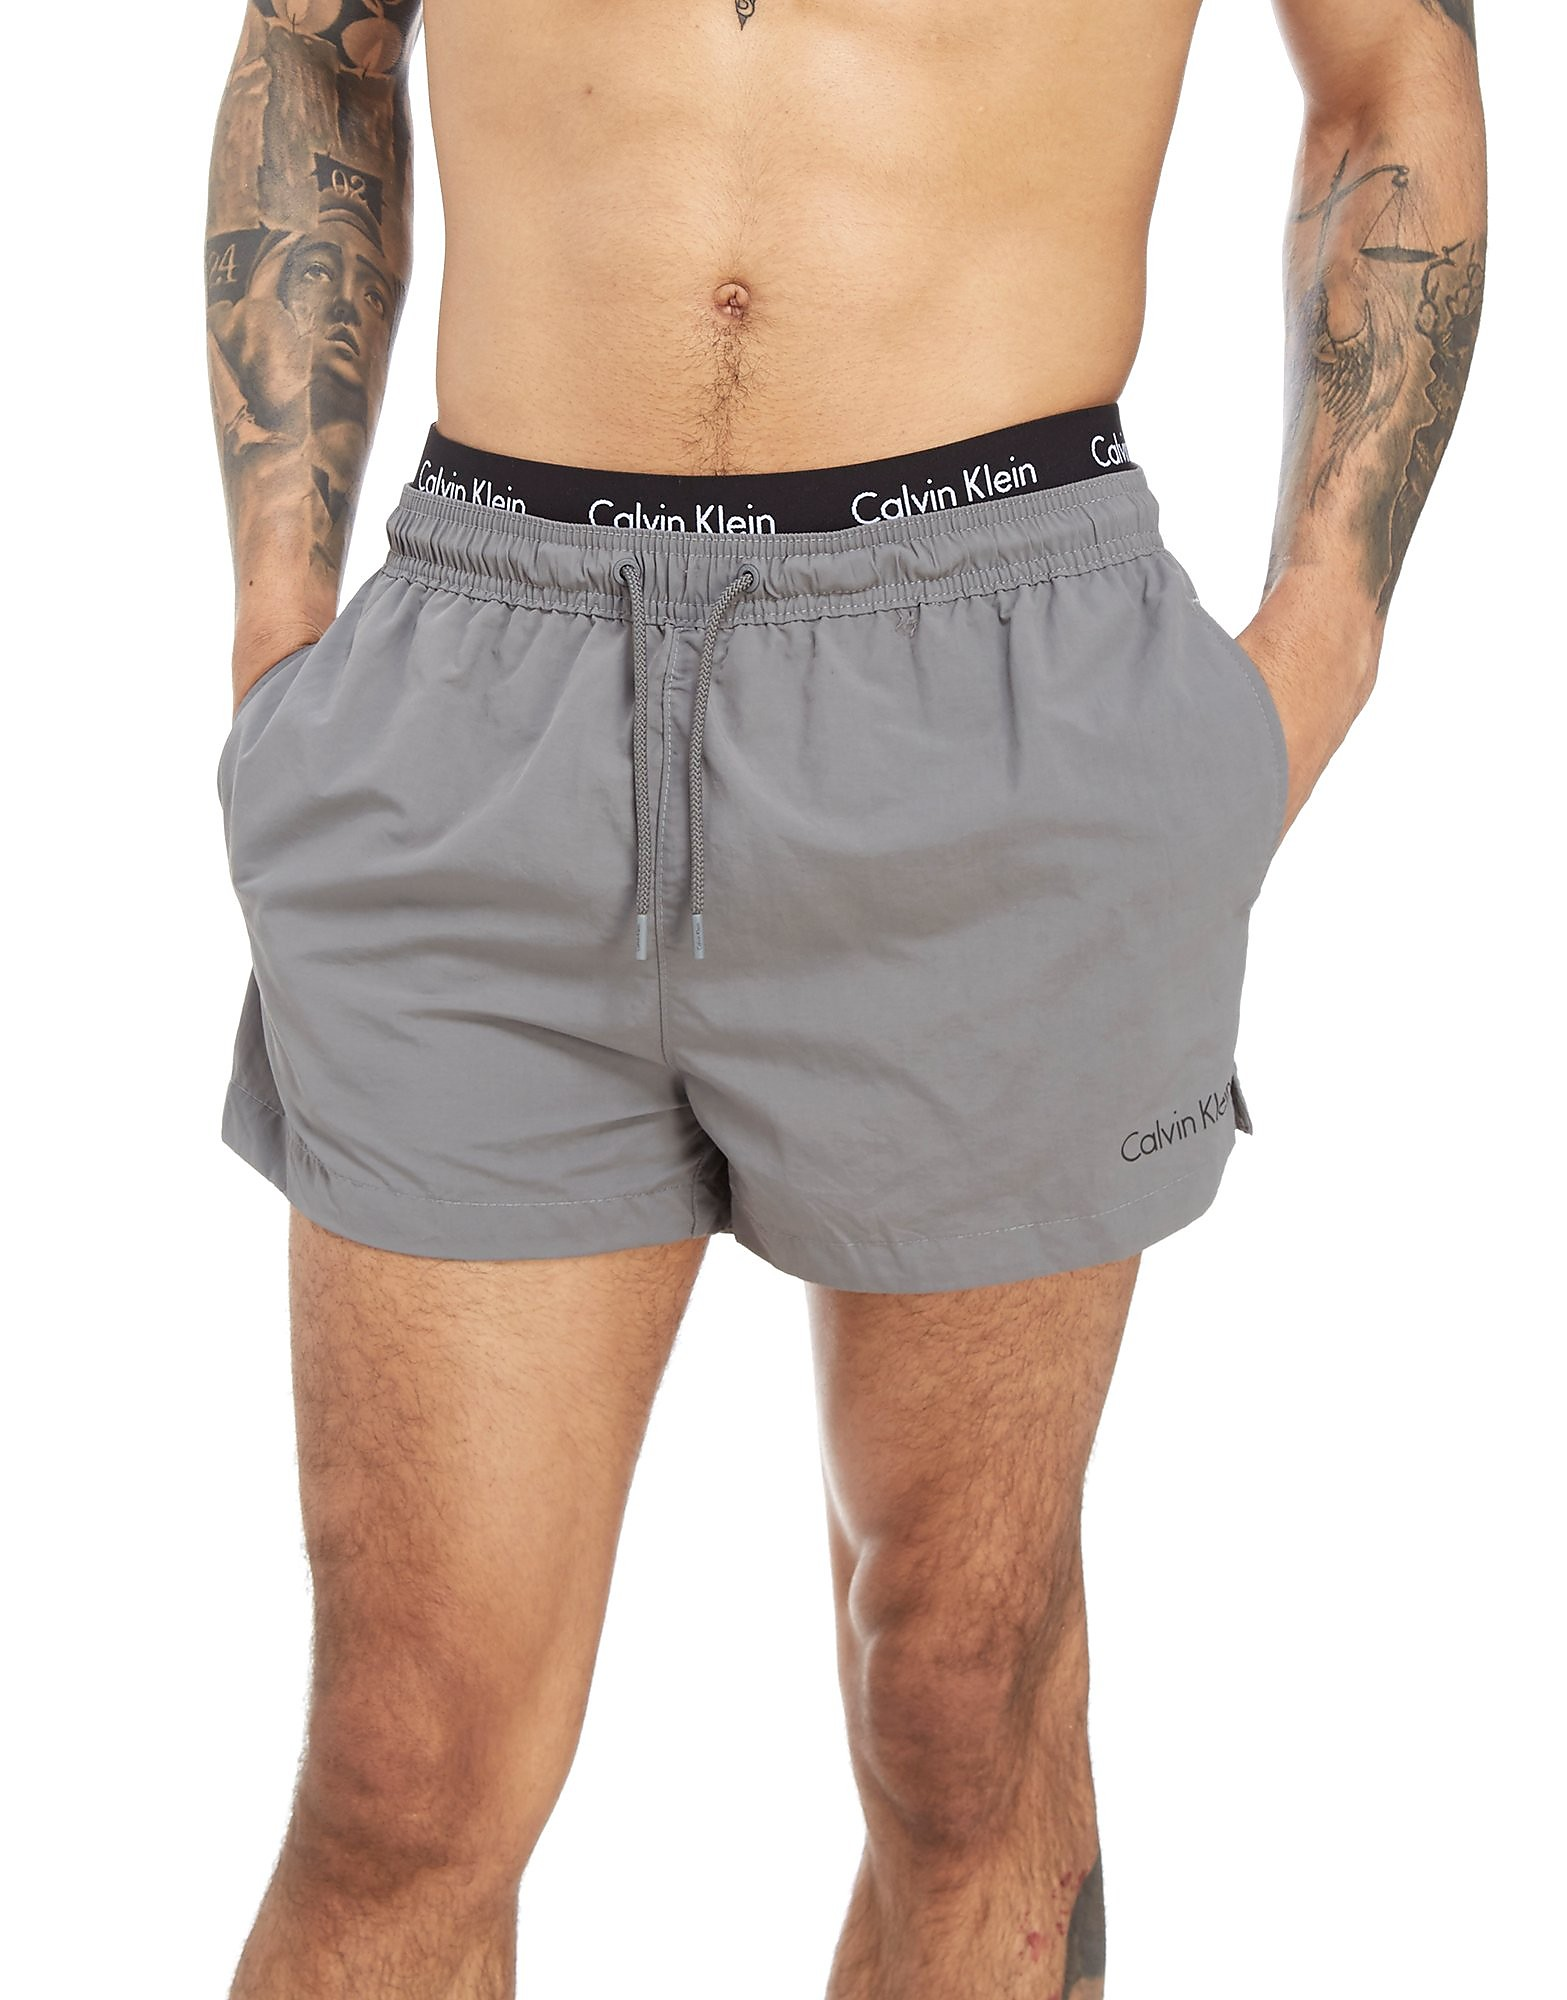 Calvin Klein Waist Band Swim Shorts